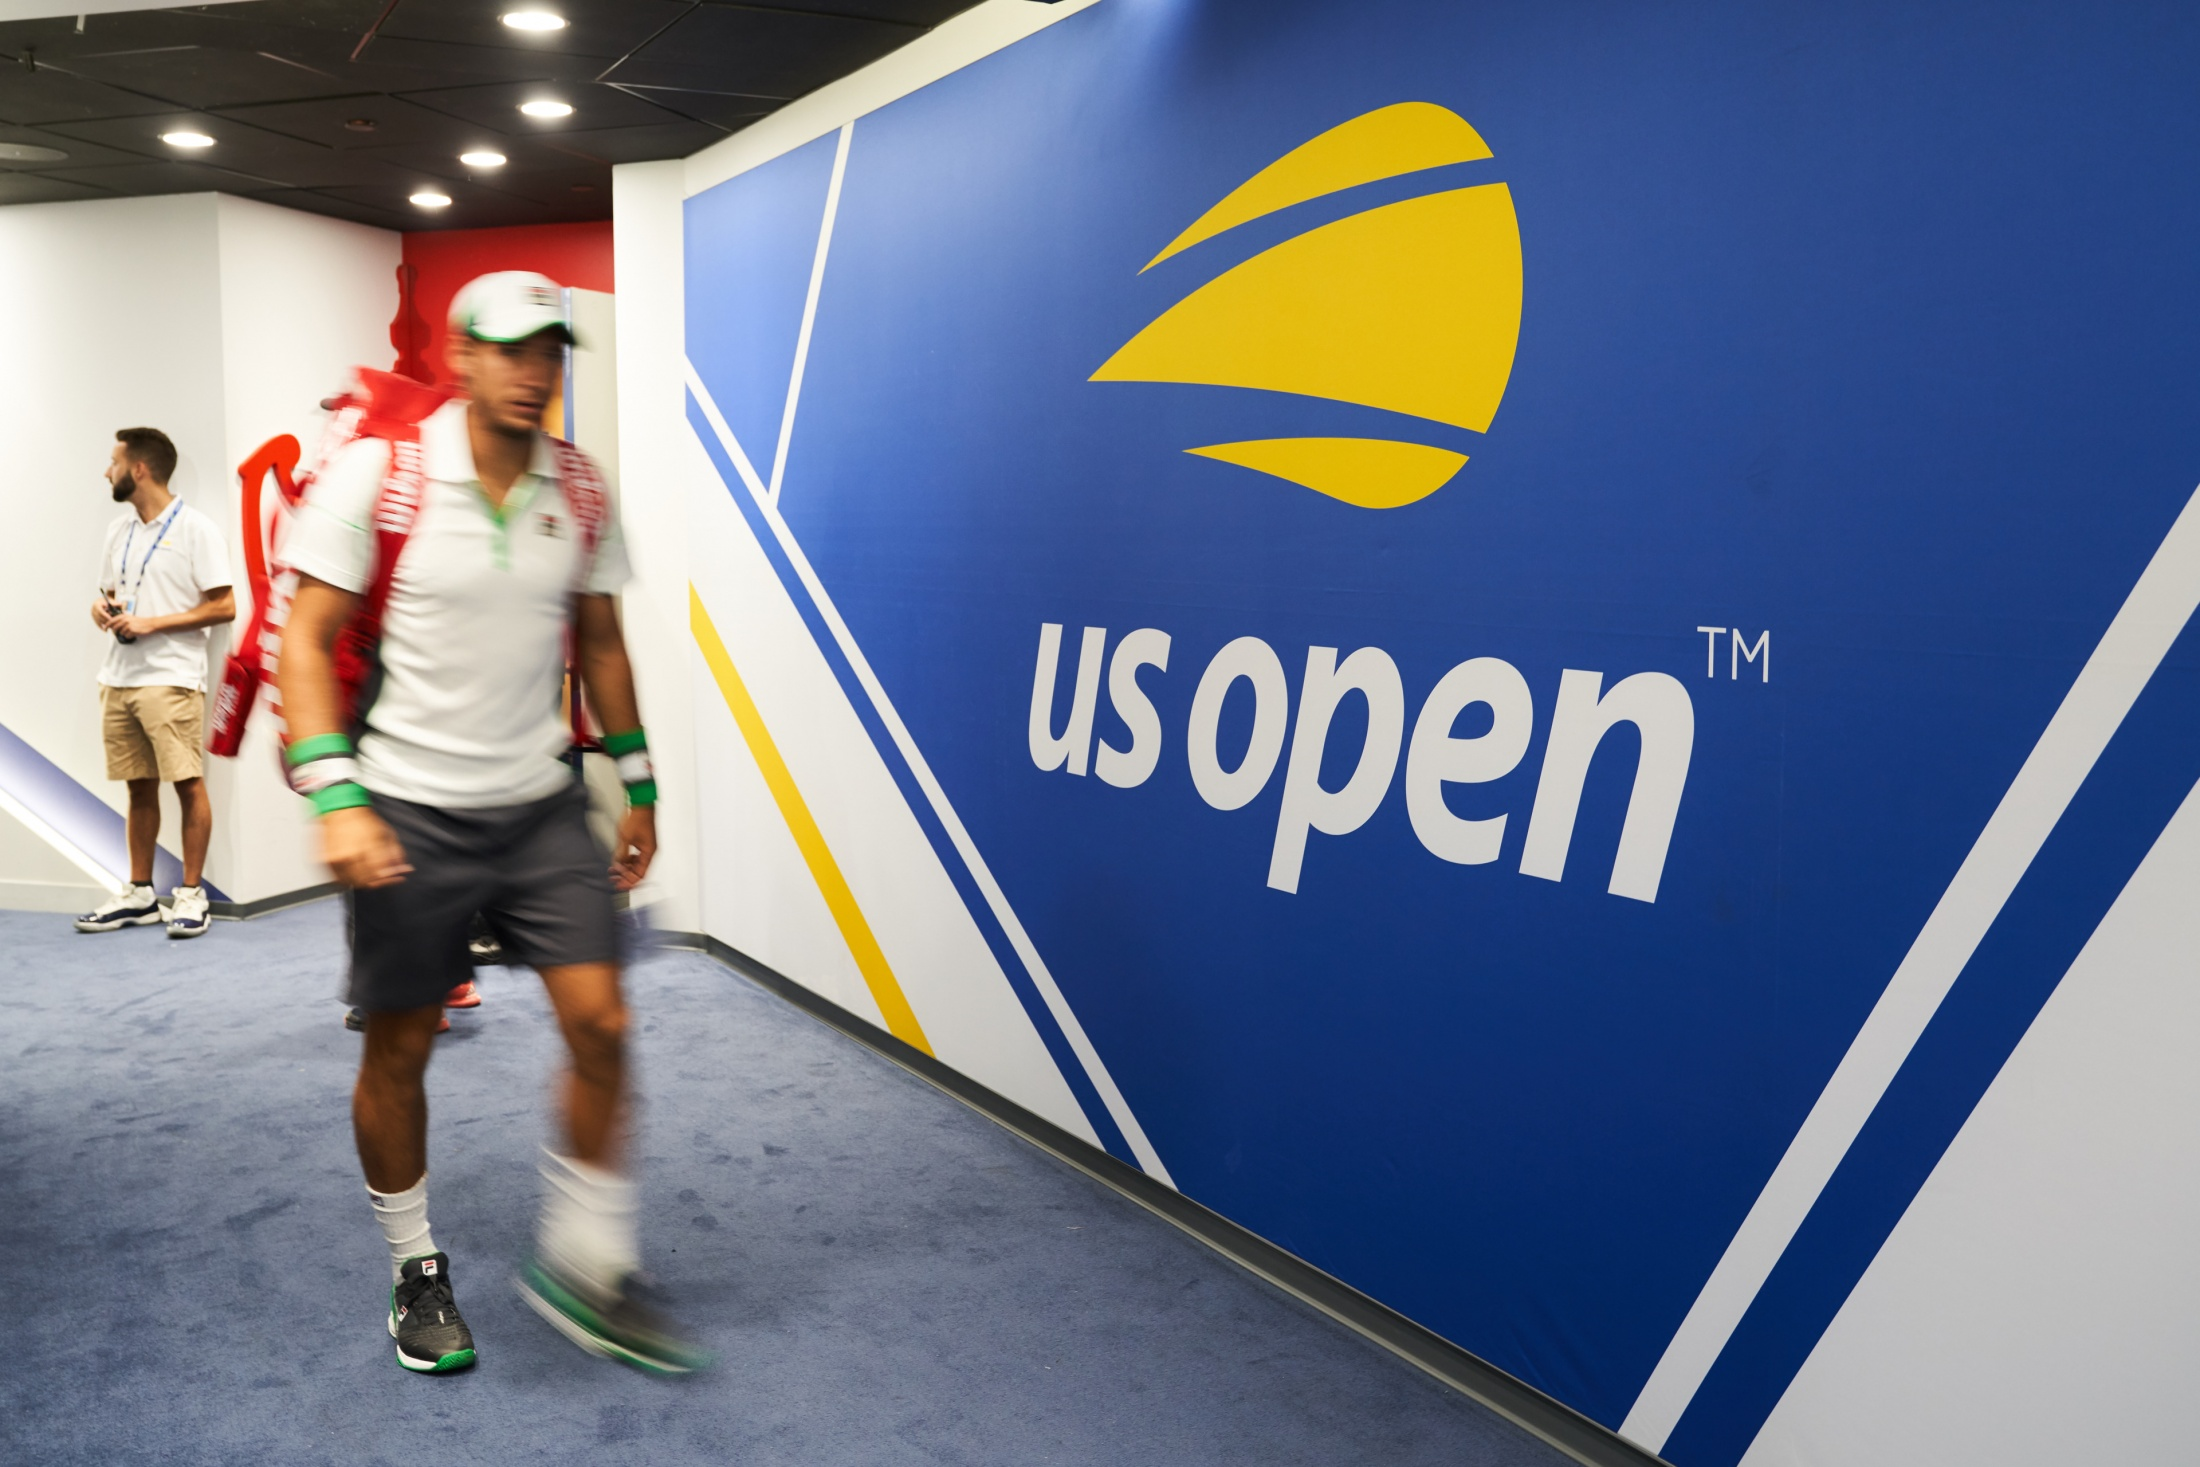 Image Media for US Open Visual Identity